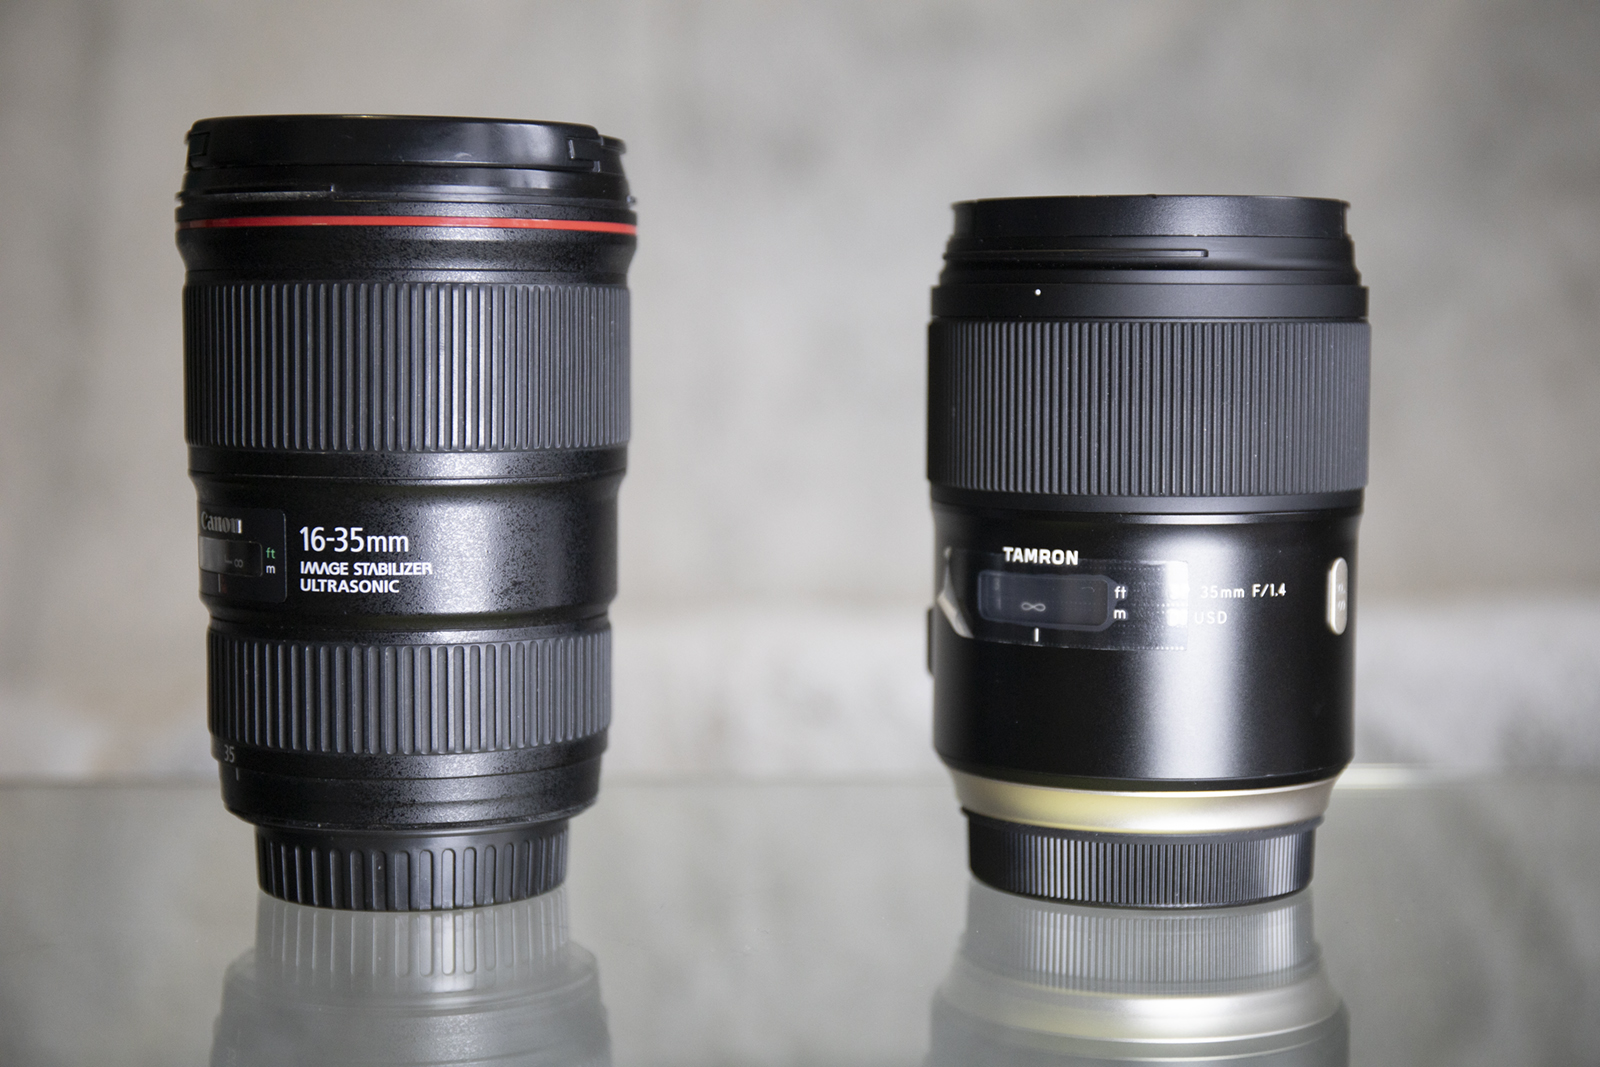 comparatif taille canon tamron Copie | Pierre-Louis Ferrer | Test du Tamron SP 35 mm f/1.4 Di USD en photographie infrarouge | Partie 1